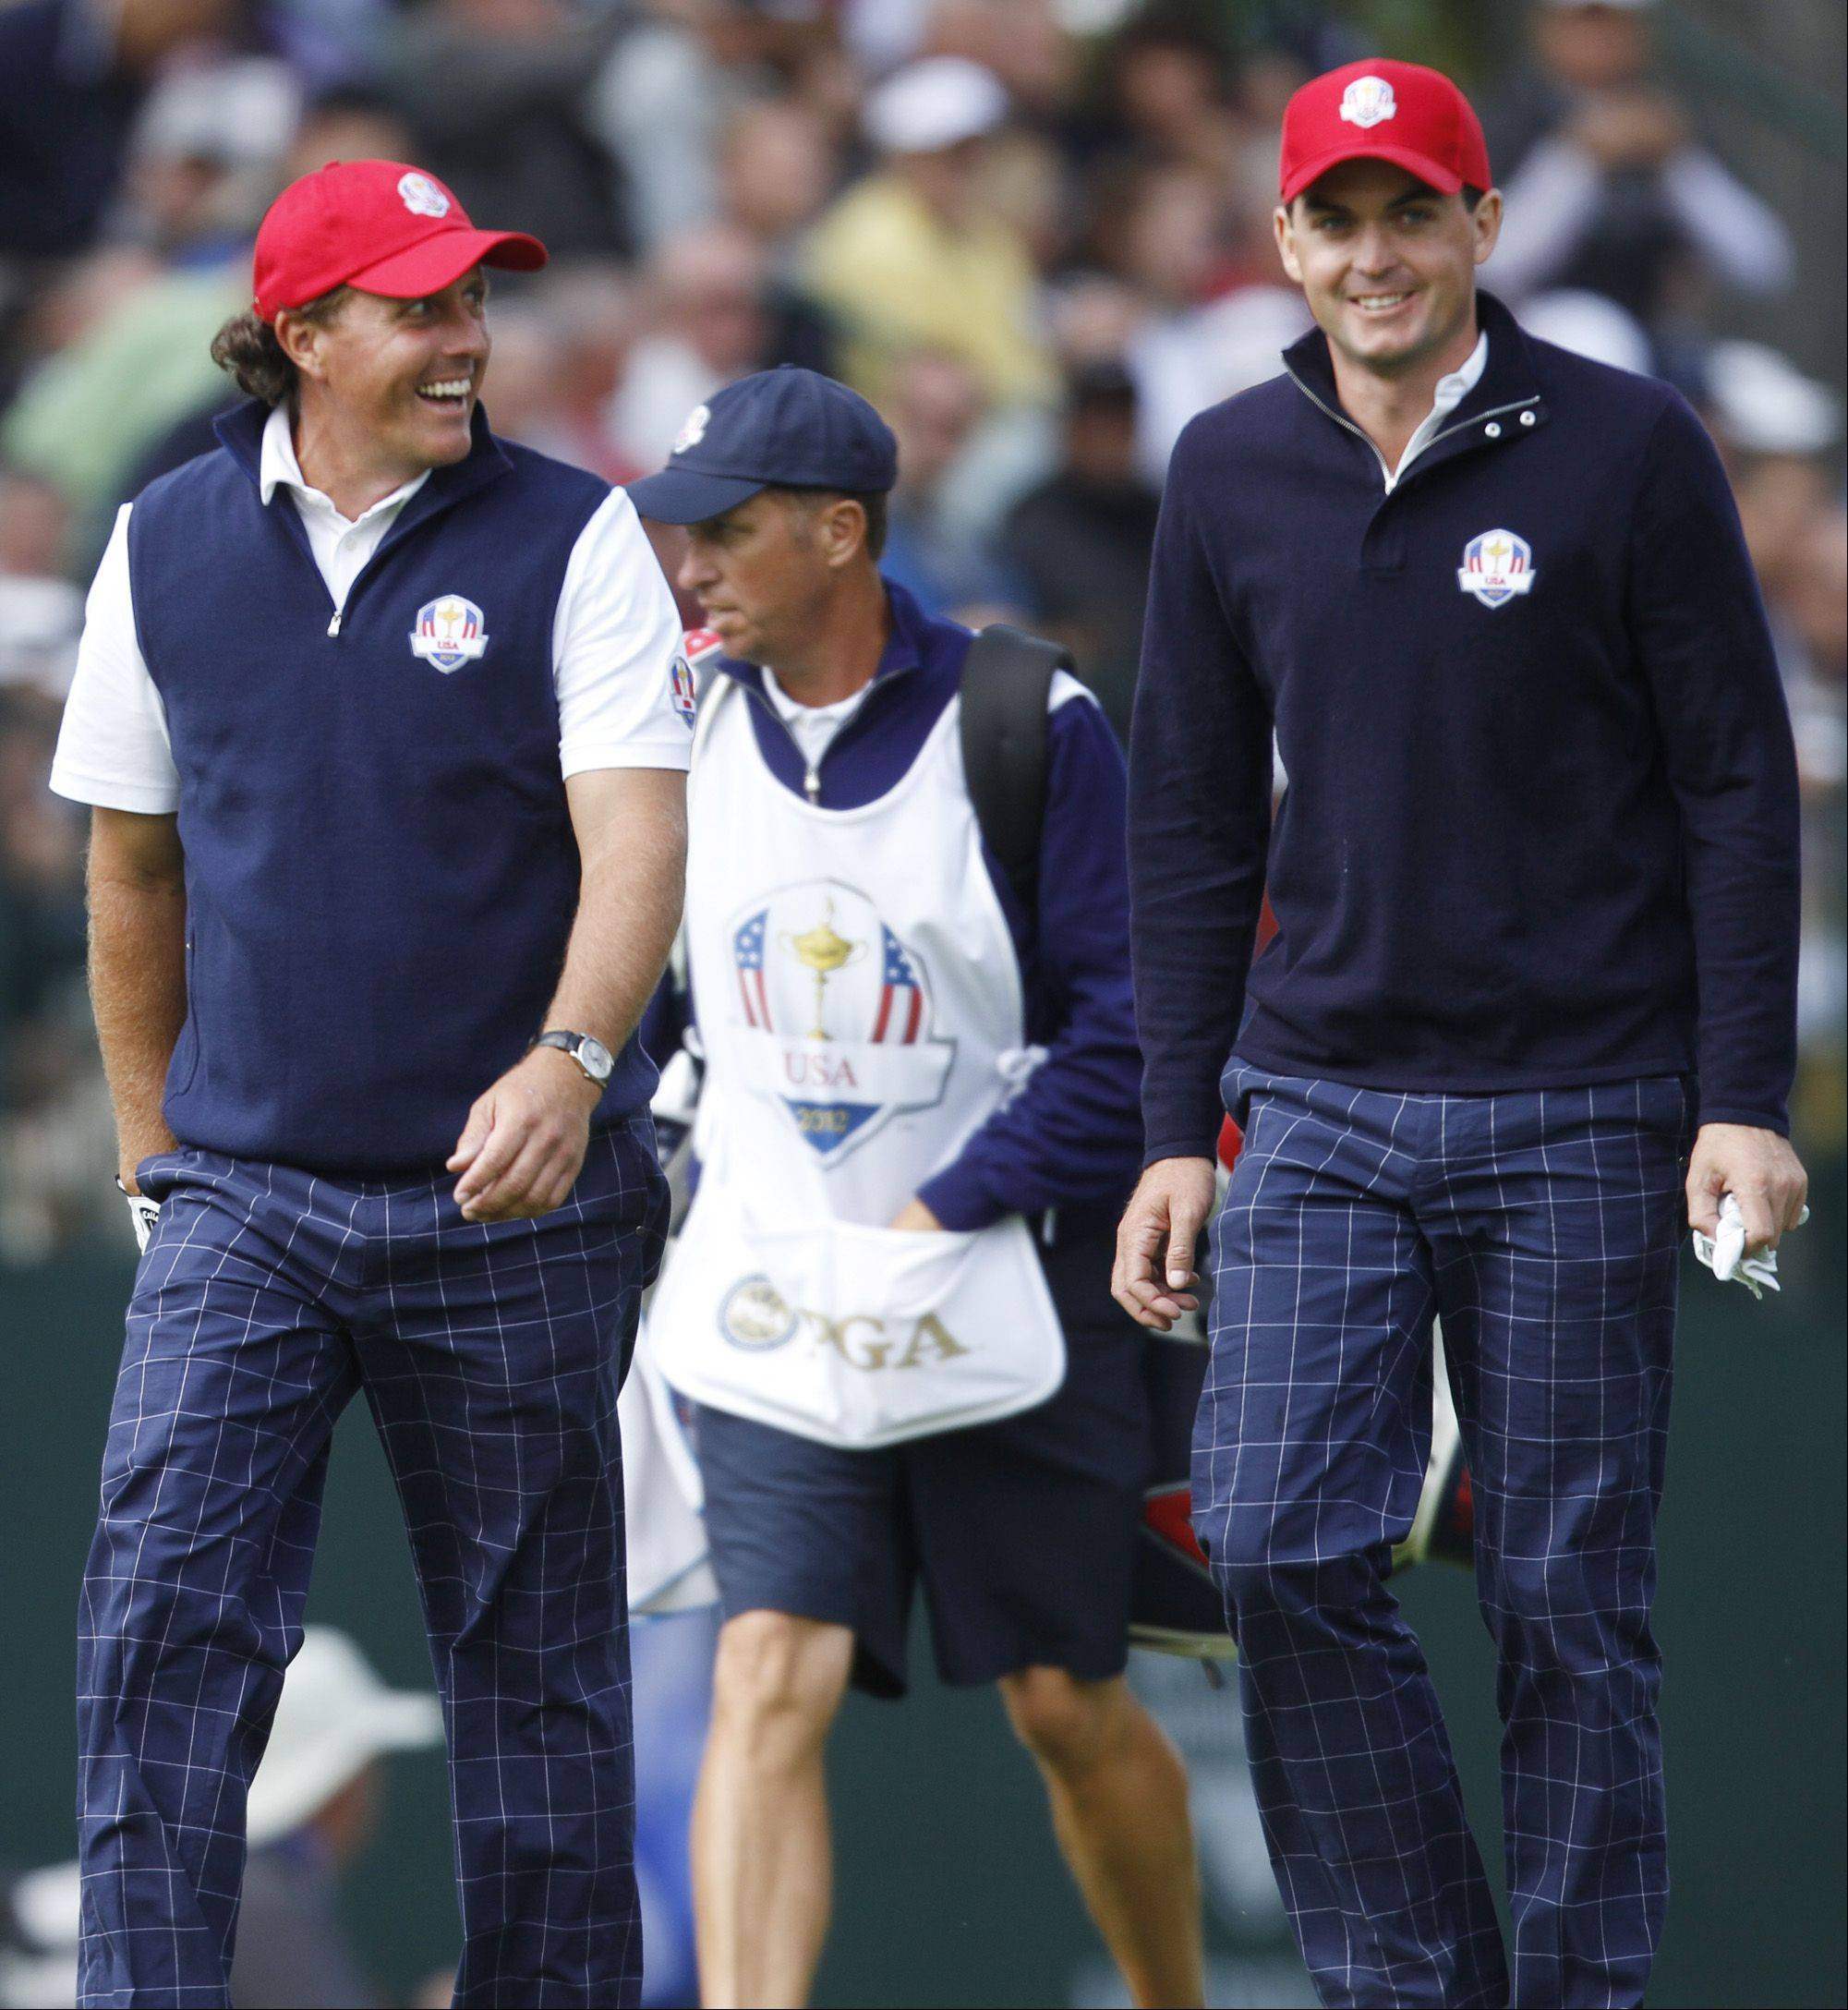 Teammates Phil Mickelson and Keegan Bradley share a laugh as they dominate their match Friday afternoon.